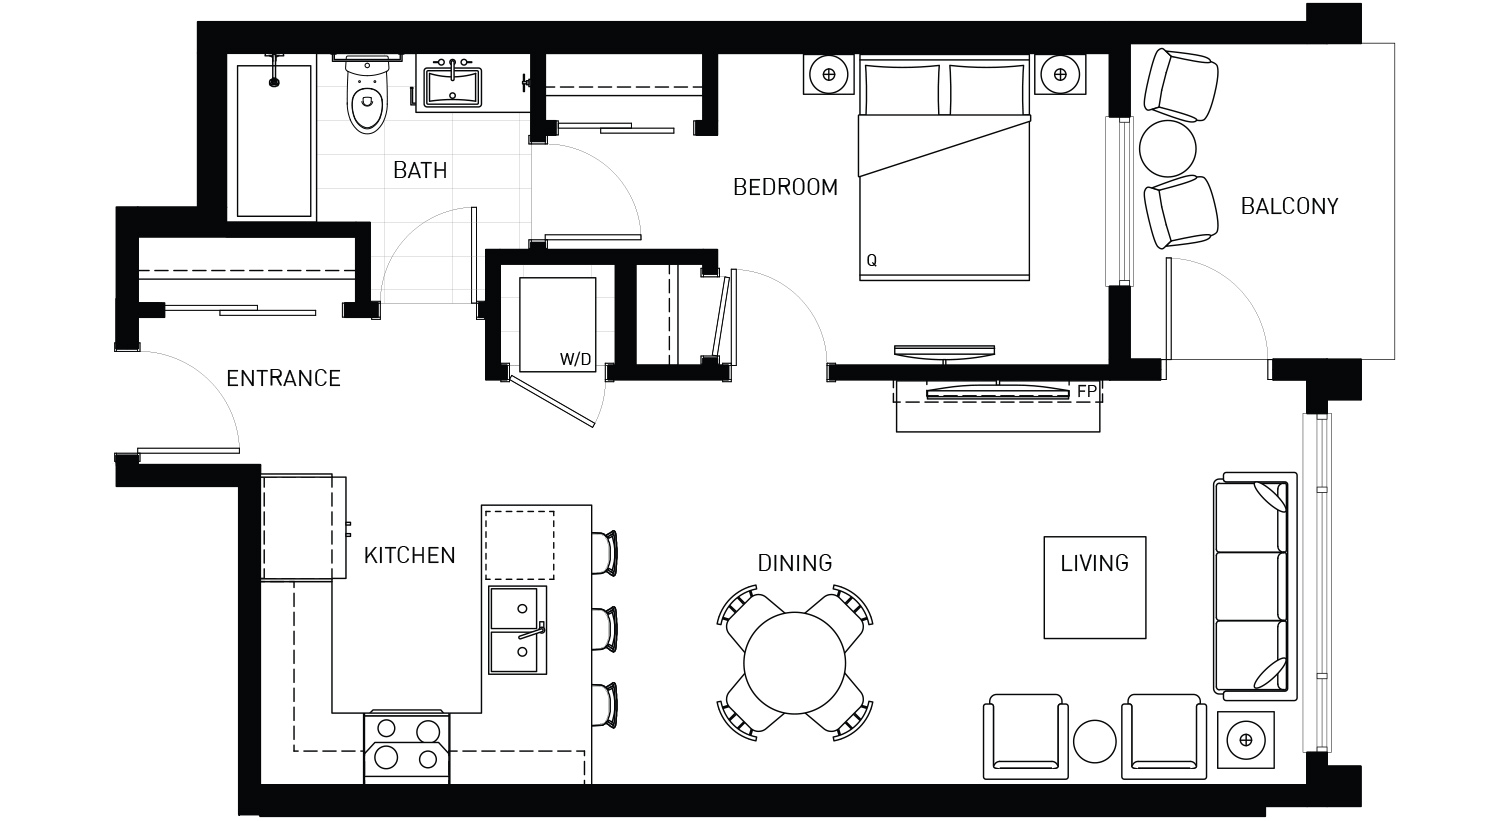 Plan C Floorplan